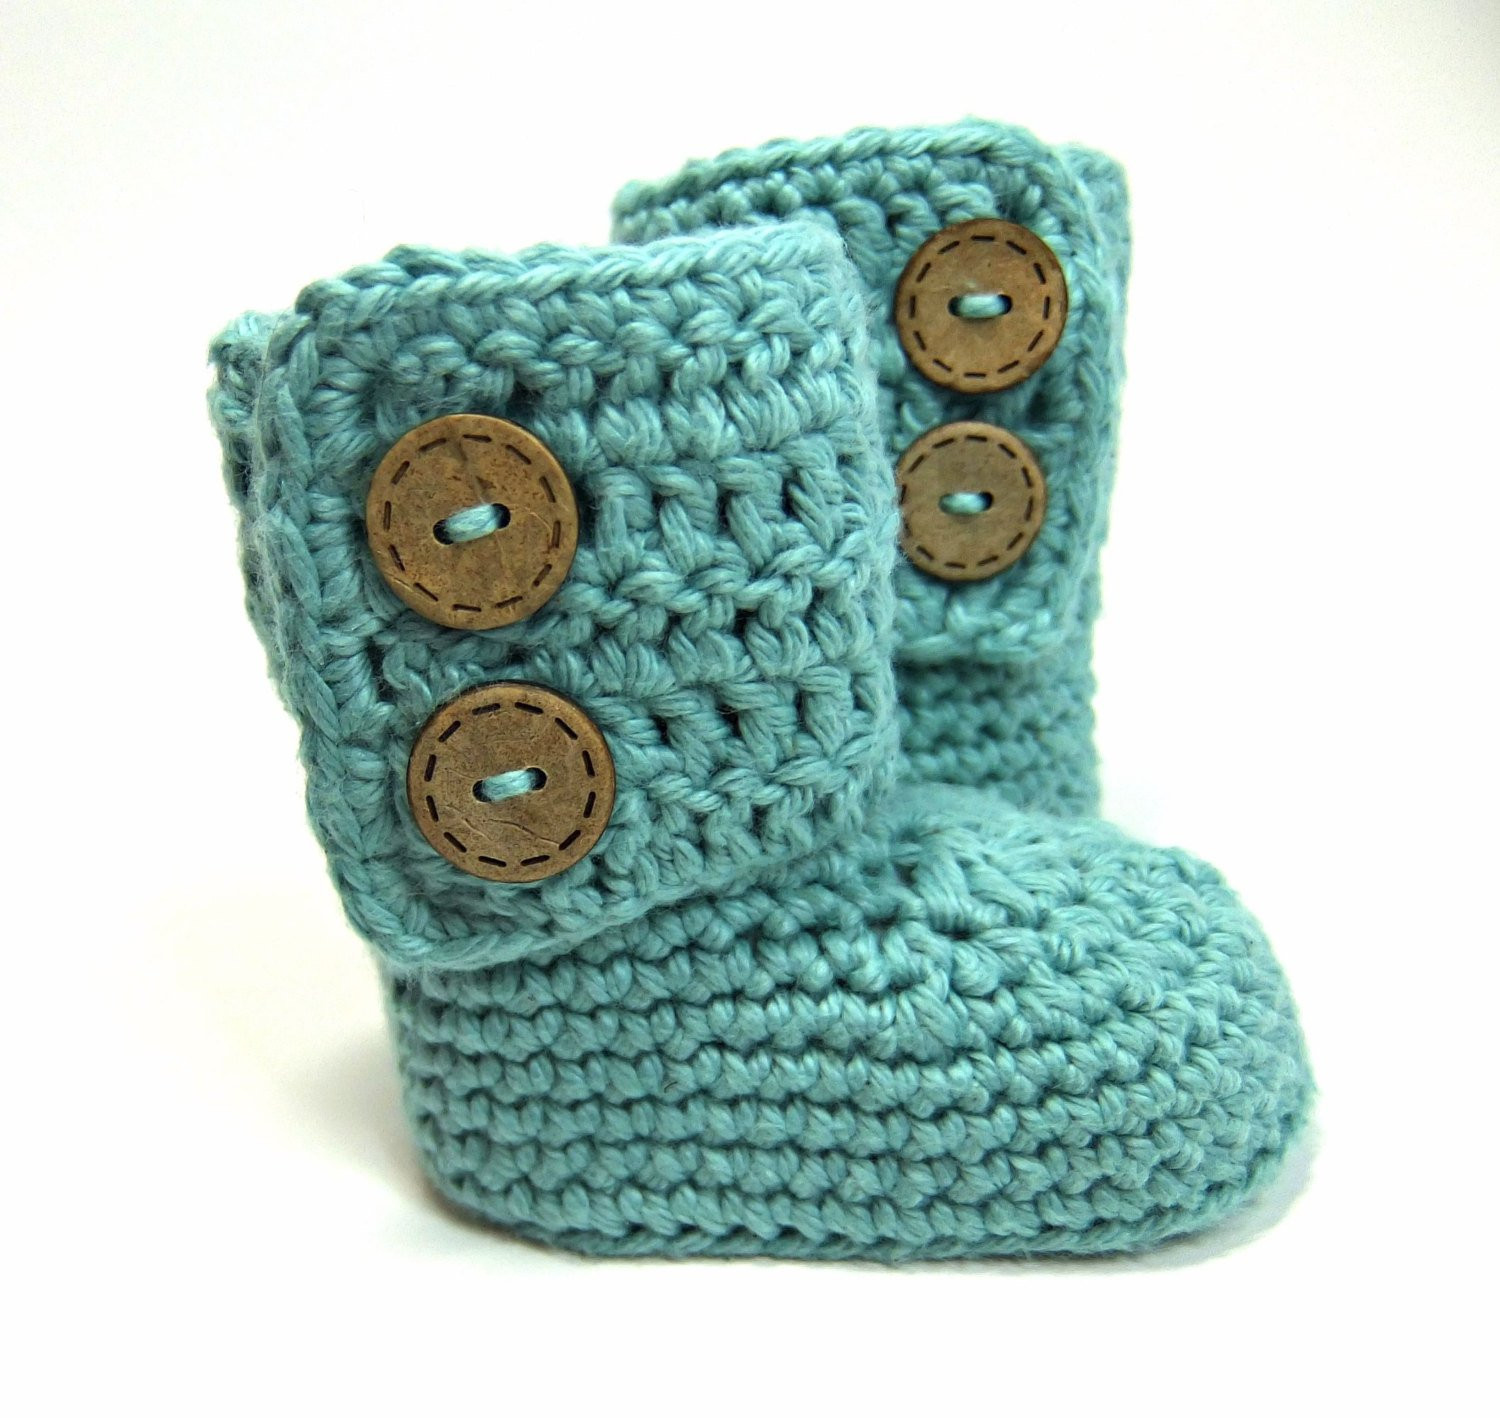 Luxury Ugg Crochet Baby Boots Crochet Uggs Boots Of New 45 Ideas Crochet Uggs Boots